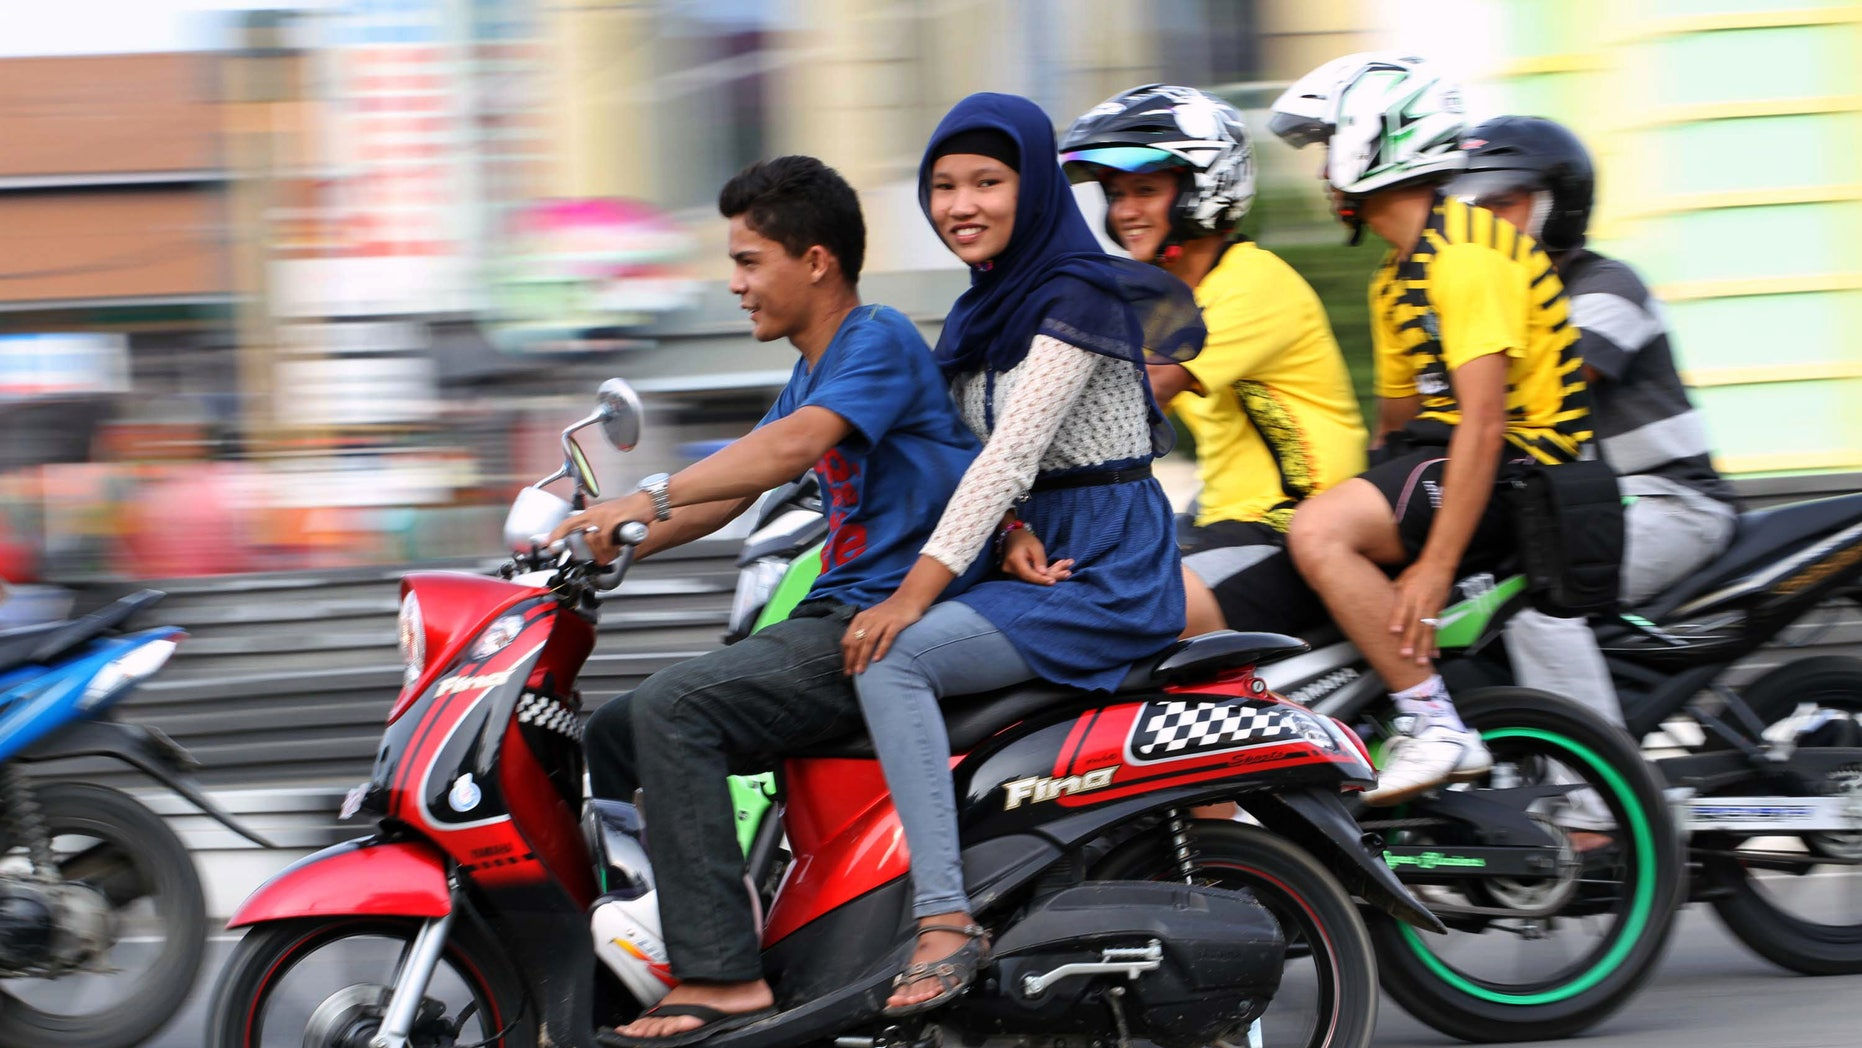 Jan. 7, 2013 - An Acehnese woman straddles on a motorbike on a road in Lhokseumawe, Aceh province, Indonesia.